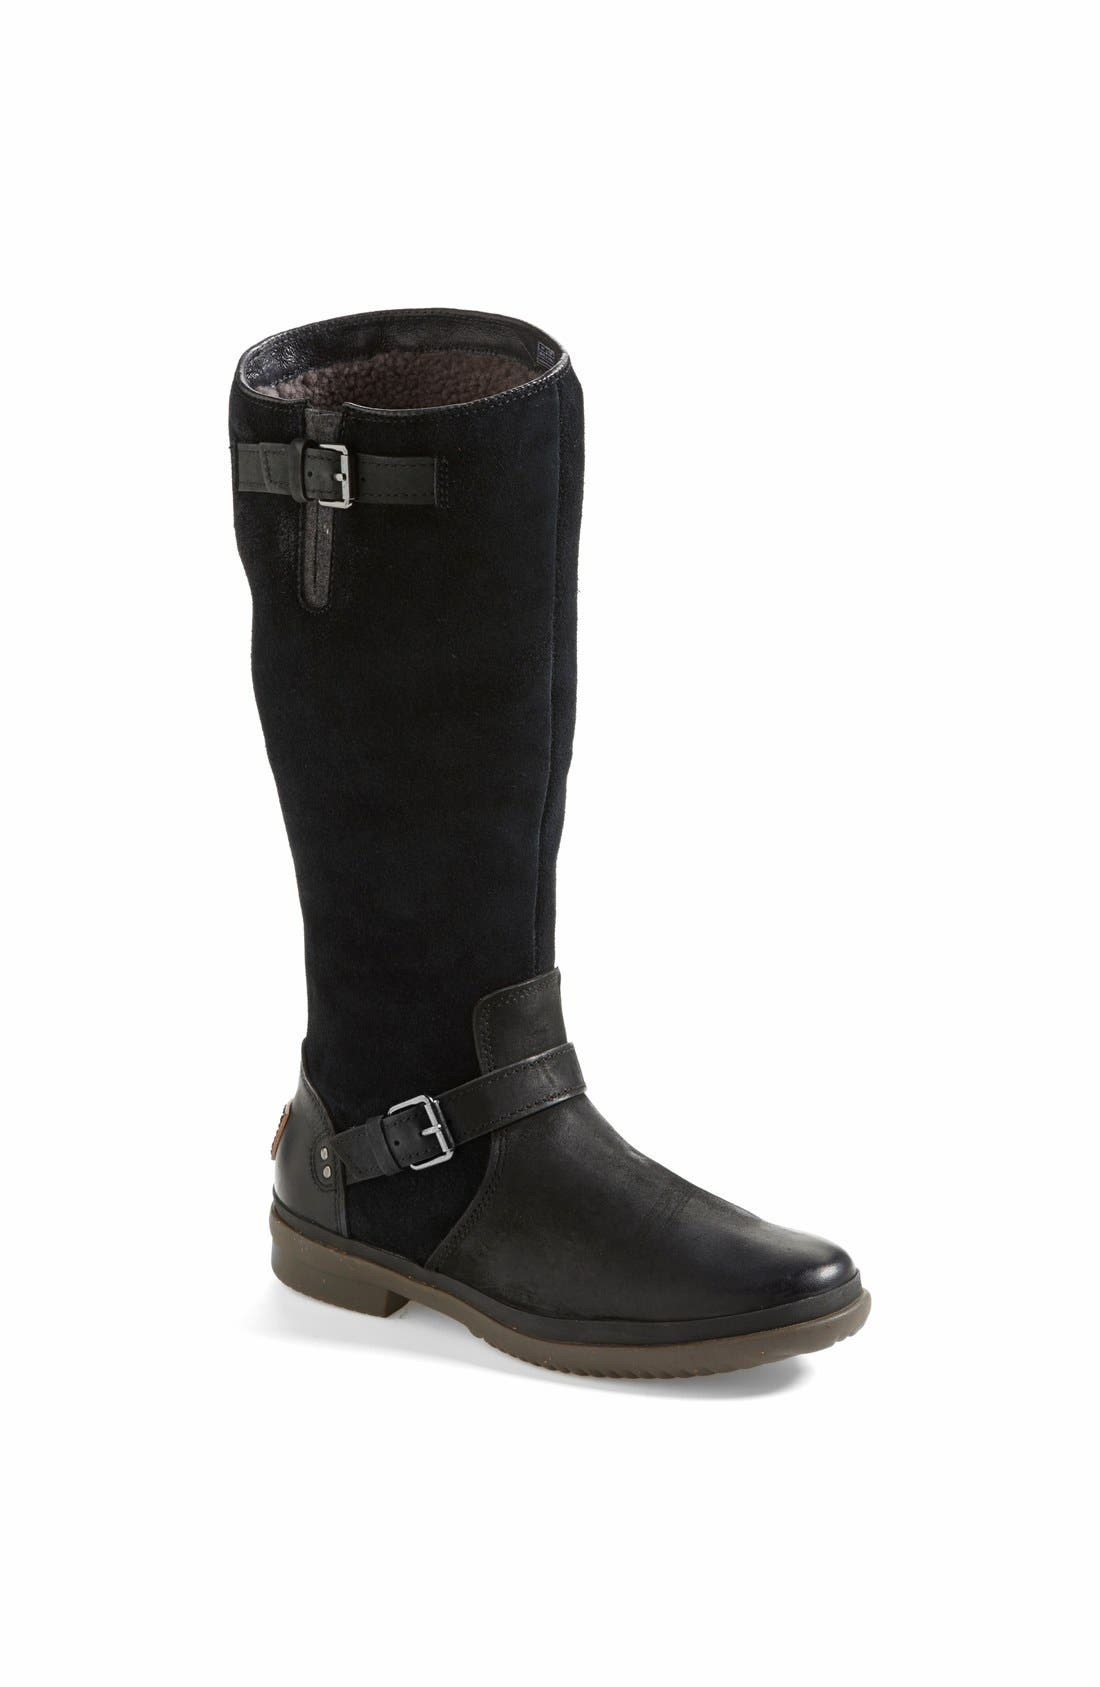 Main Image - UGG® 'Thomsen' Waterproof Leather Knee High Boot ...